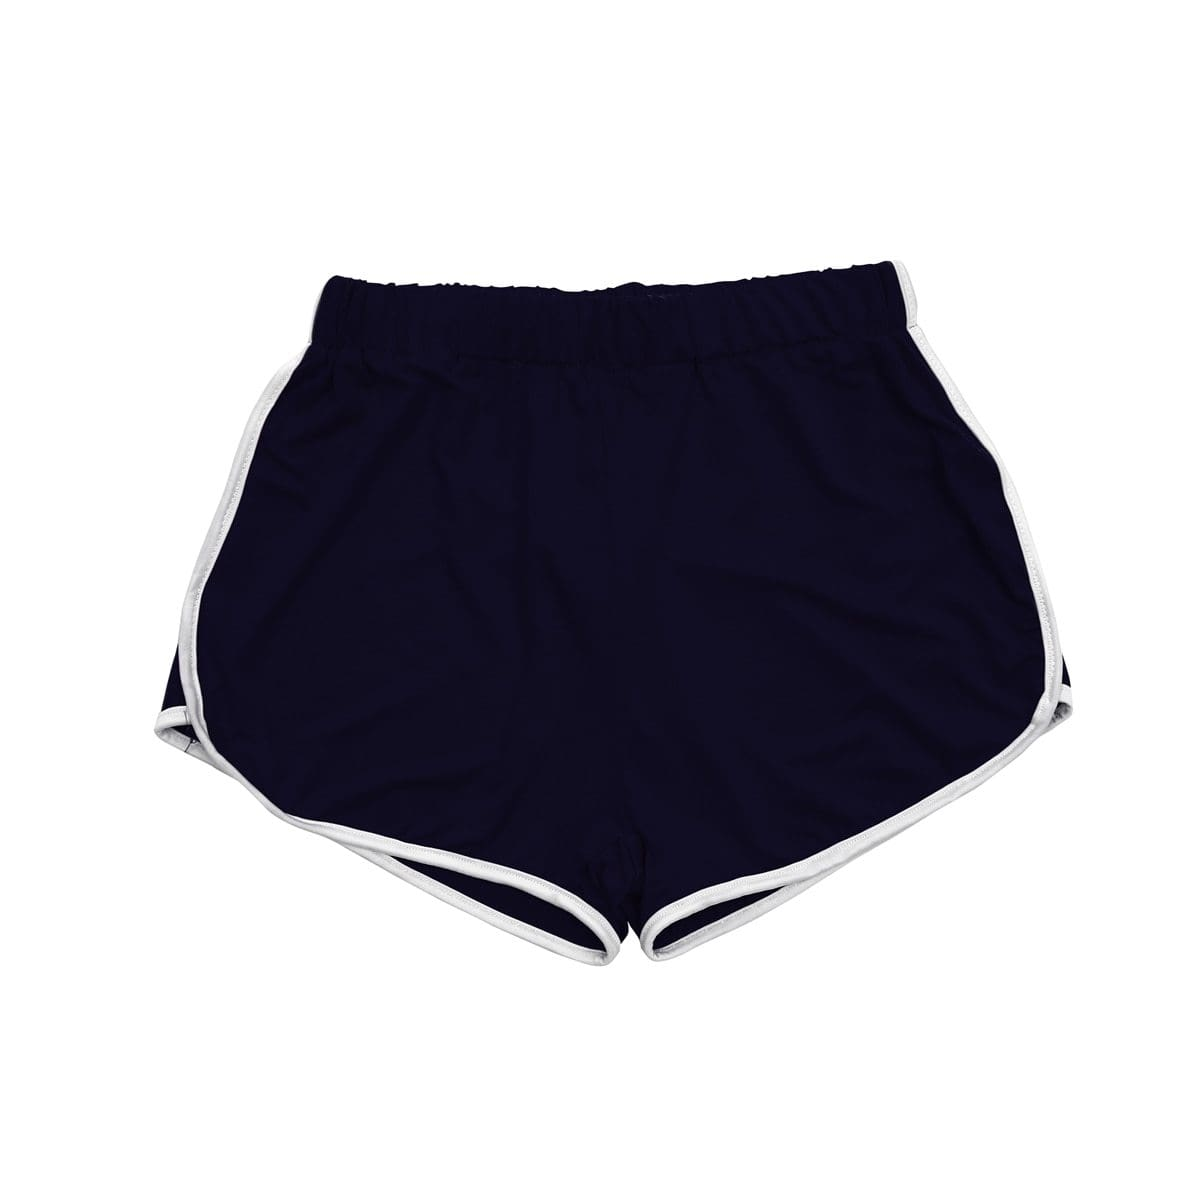 The Best Fashion Stretch Waist Casual Shorts Woman High Waist Shorts Summer Beach Sexy Short Ladies Clothing Online - Source Silk